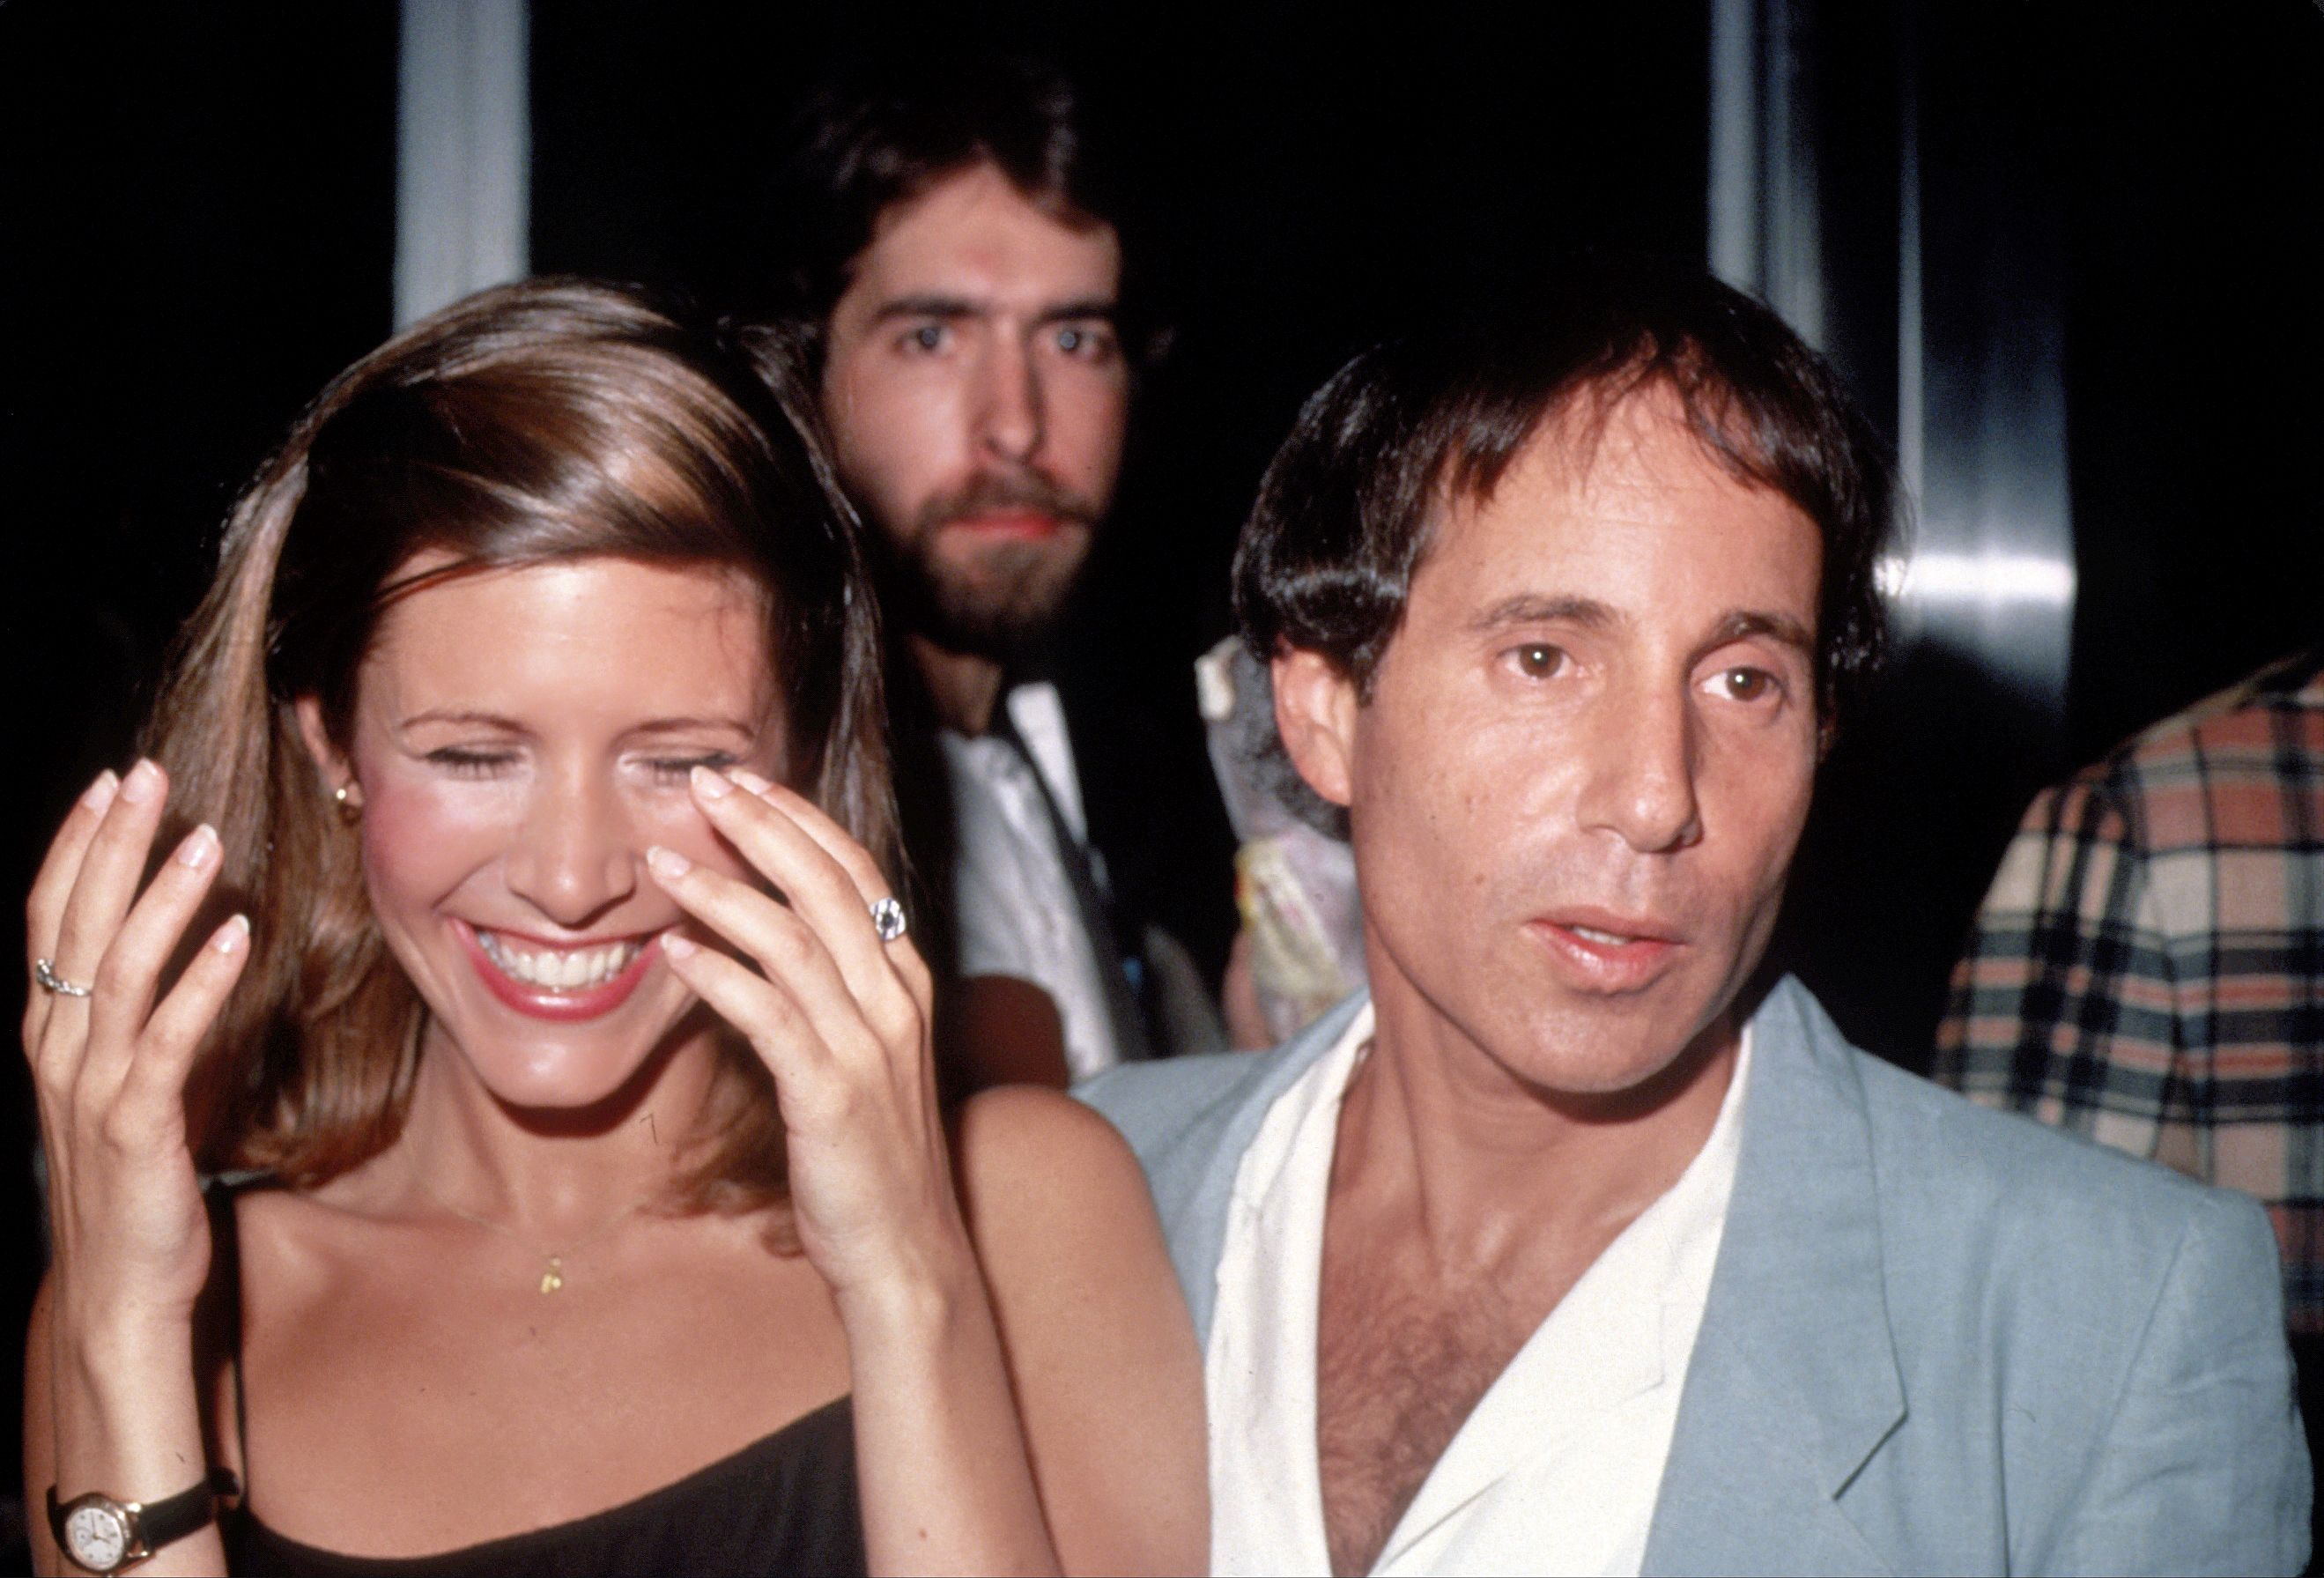 Paul Simon and Carrie Fisher in New York City in 1983, the year the couple married and the year Simon's D-Core masterpiece Hearts & Bones came out. Simon and Fisher had a turbulent relationship that ended in divorce a year later.